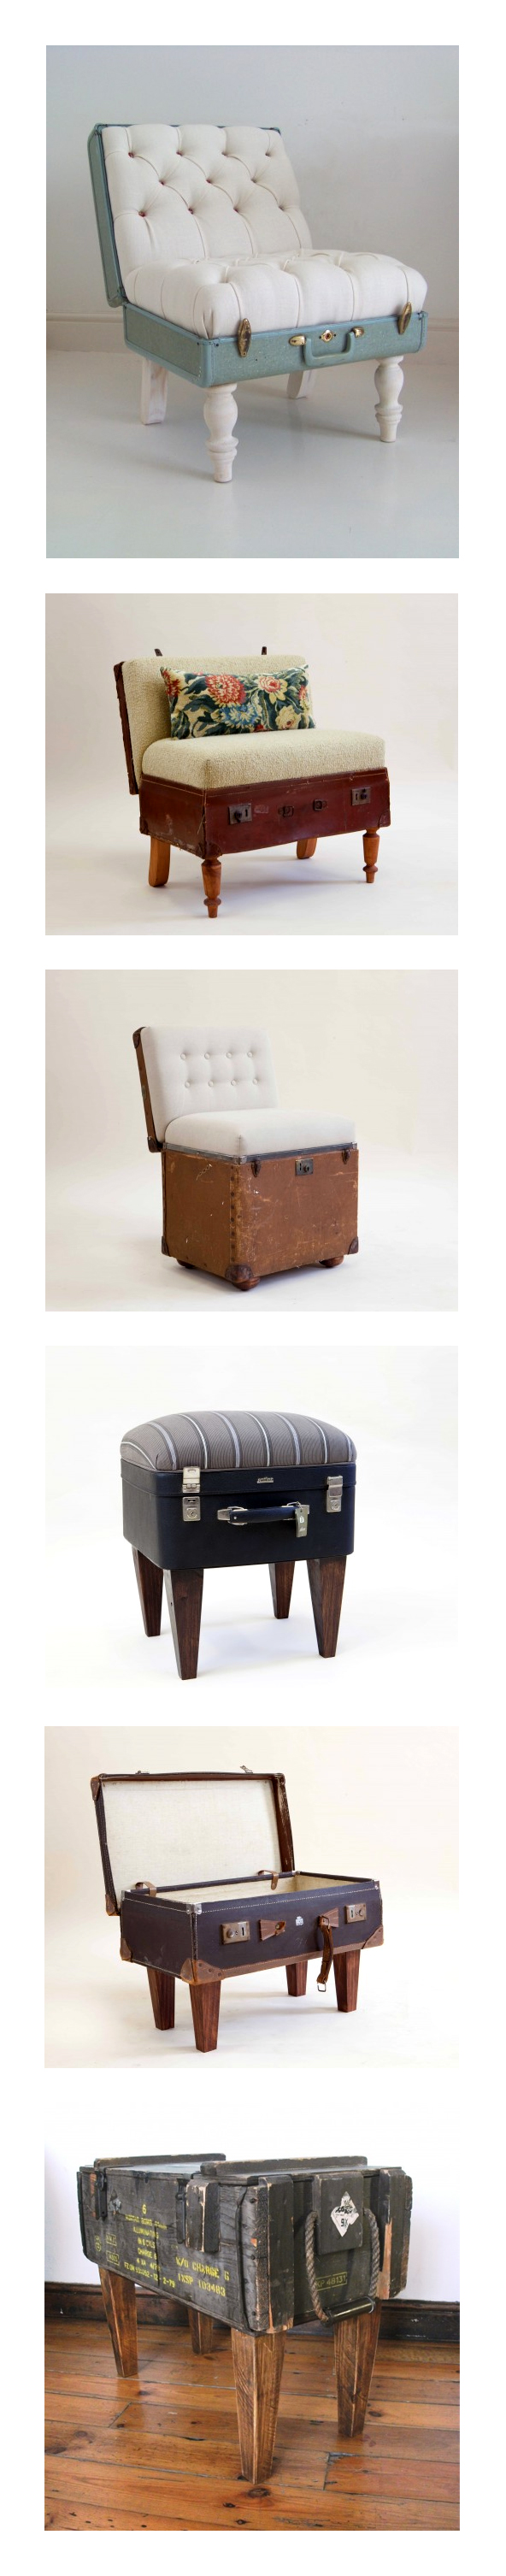 suitcase-furniture-blog-post